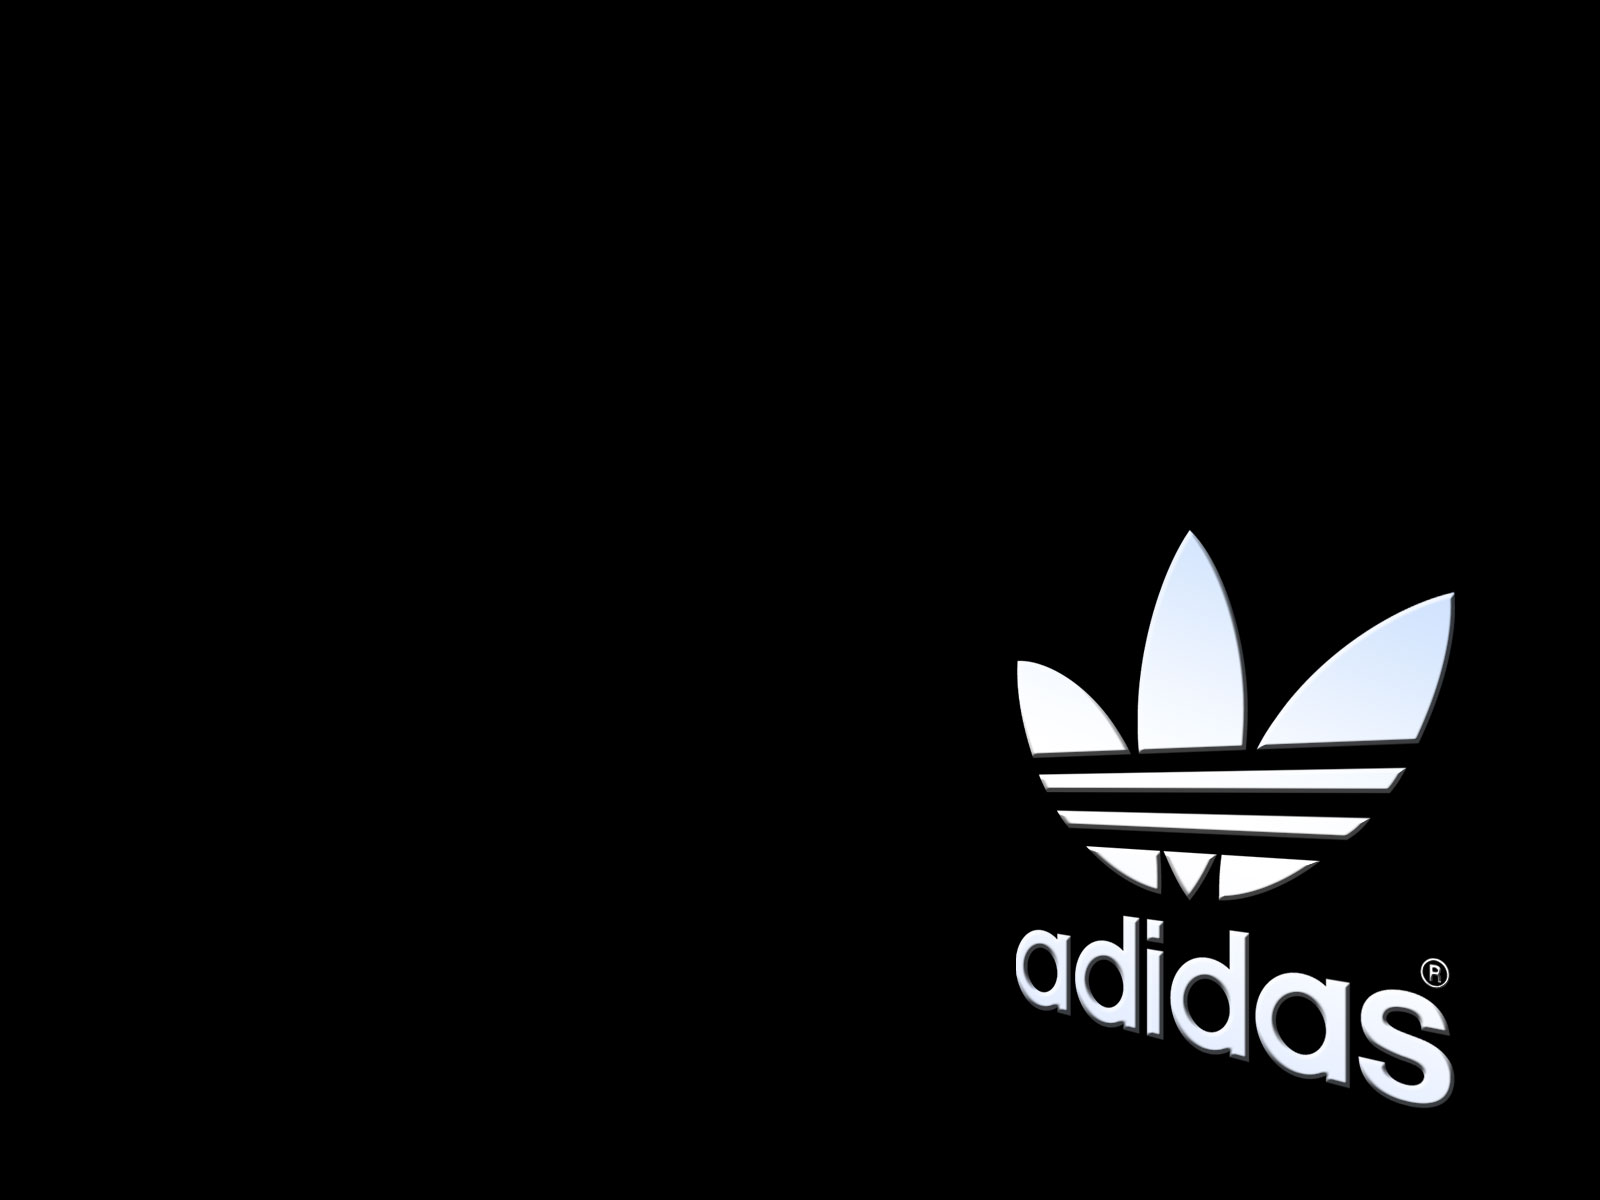 3D Adidas Wallpaper Logo HD